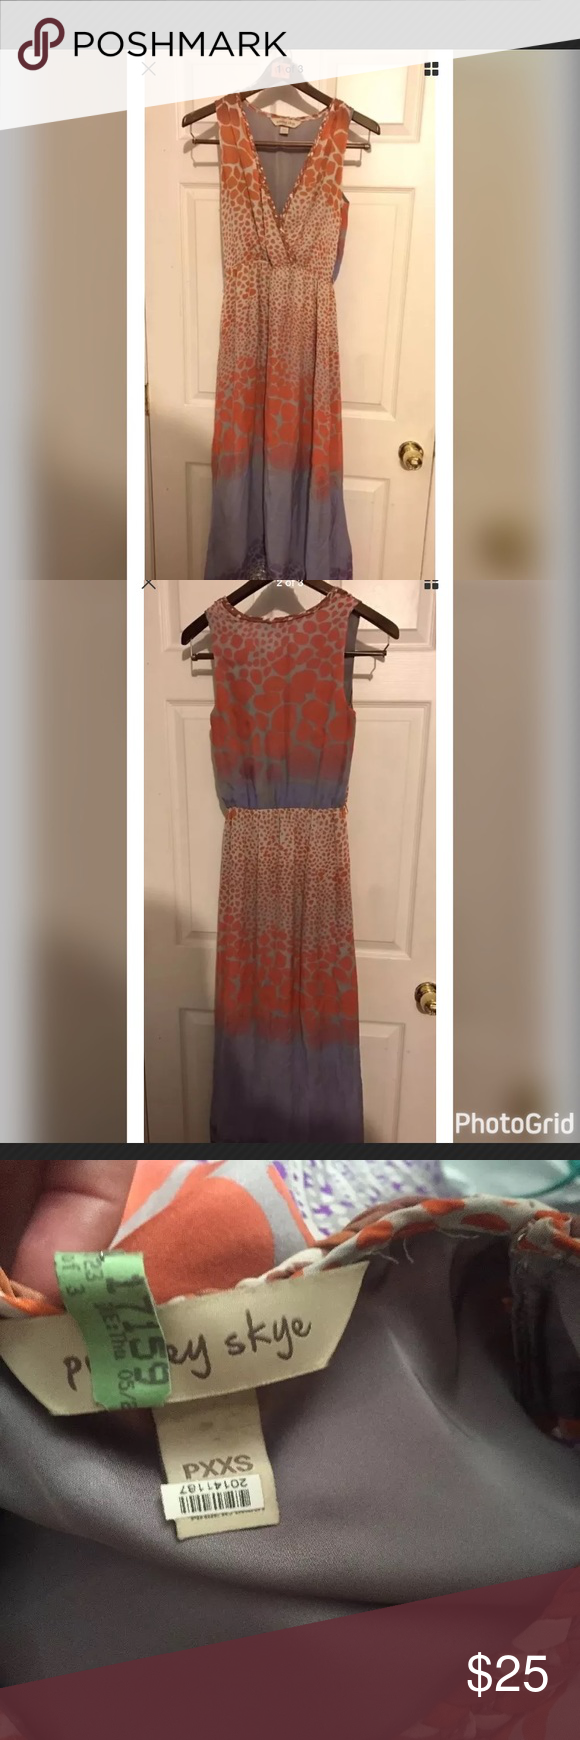 Gorgeous Presley Skye silk dress pxxs Gorgeous dress petite xxs but fits more like xs. Excellent condition only worn a few times, I offer a 20 percent discount when you bundle 2 or more items. Presley Skye Dresses Maxi